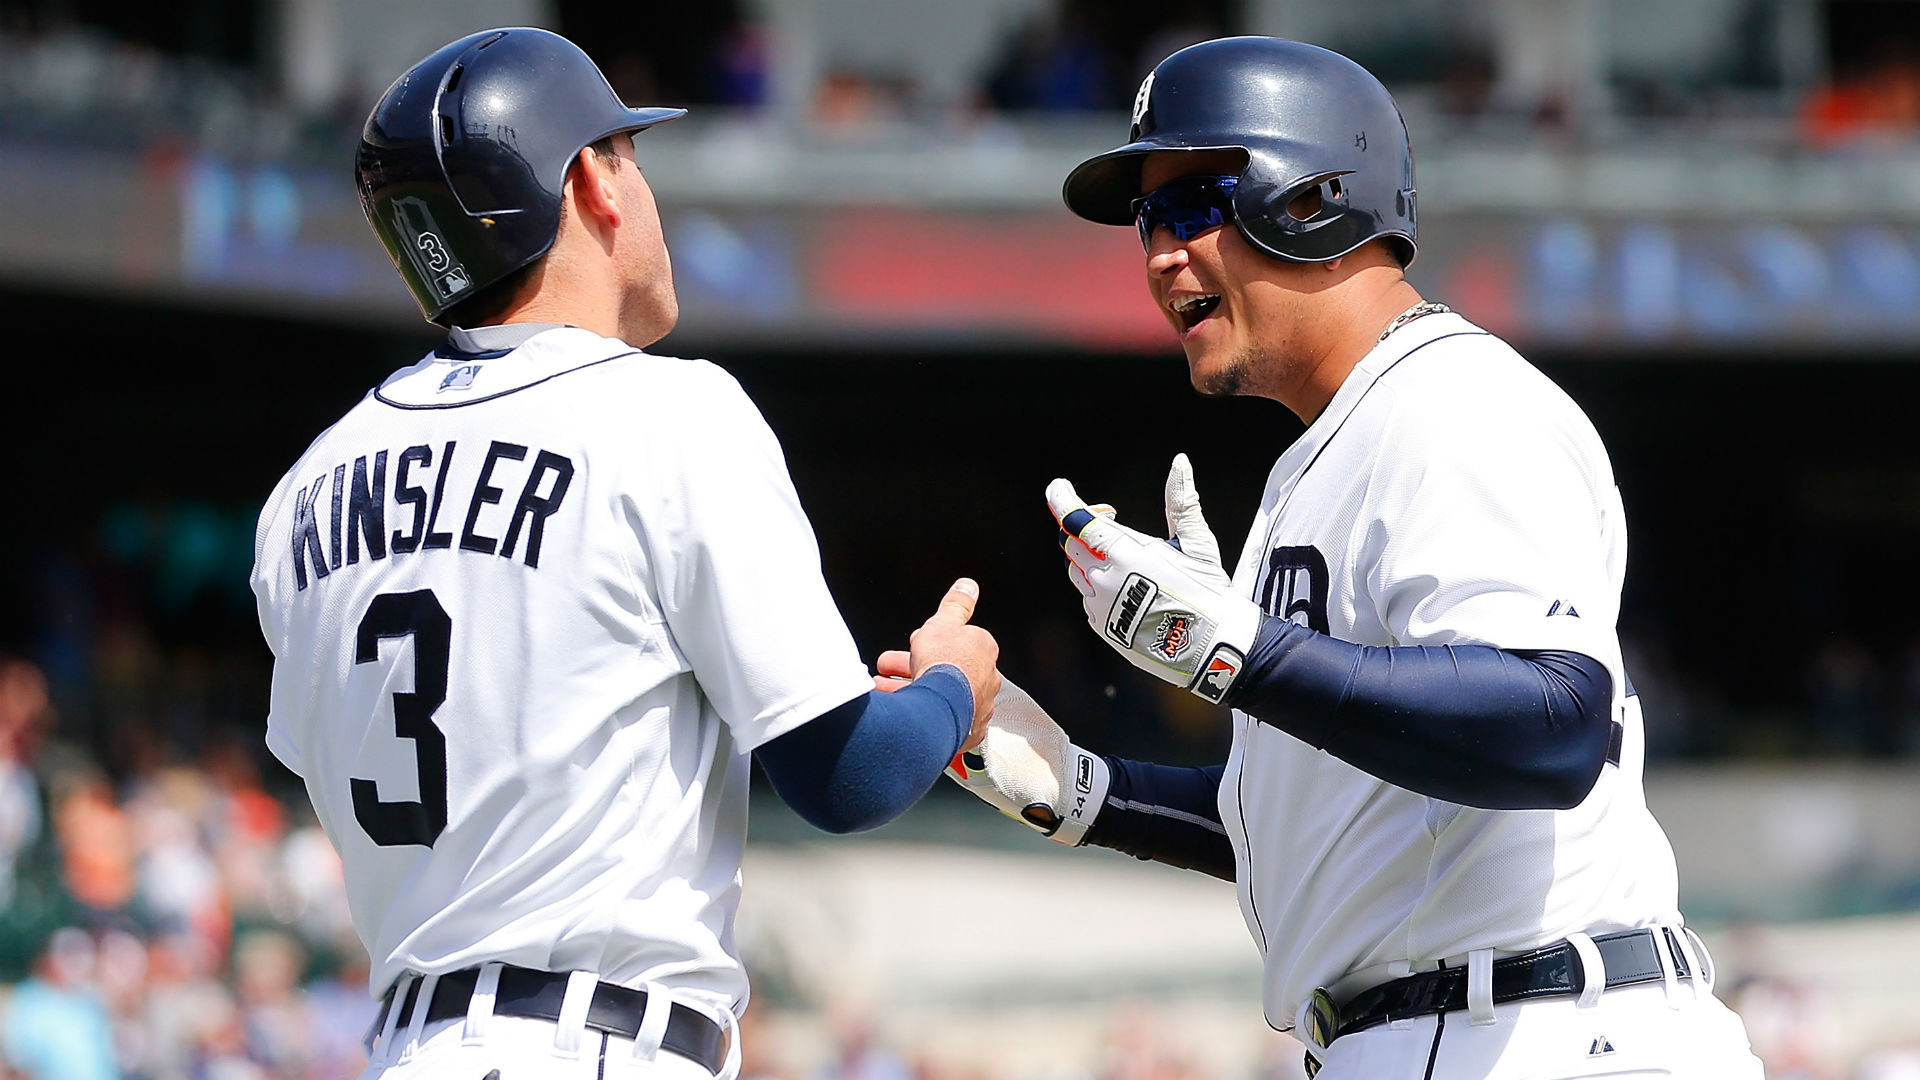 Kinsler-Cabrera-051615-GETTY-FTR